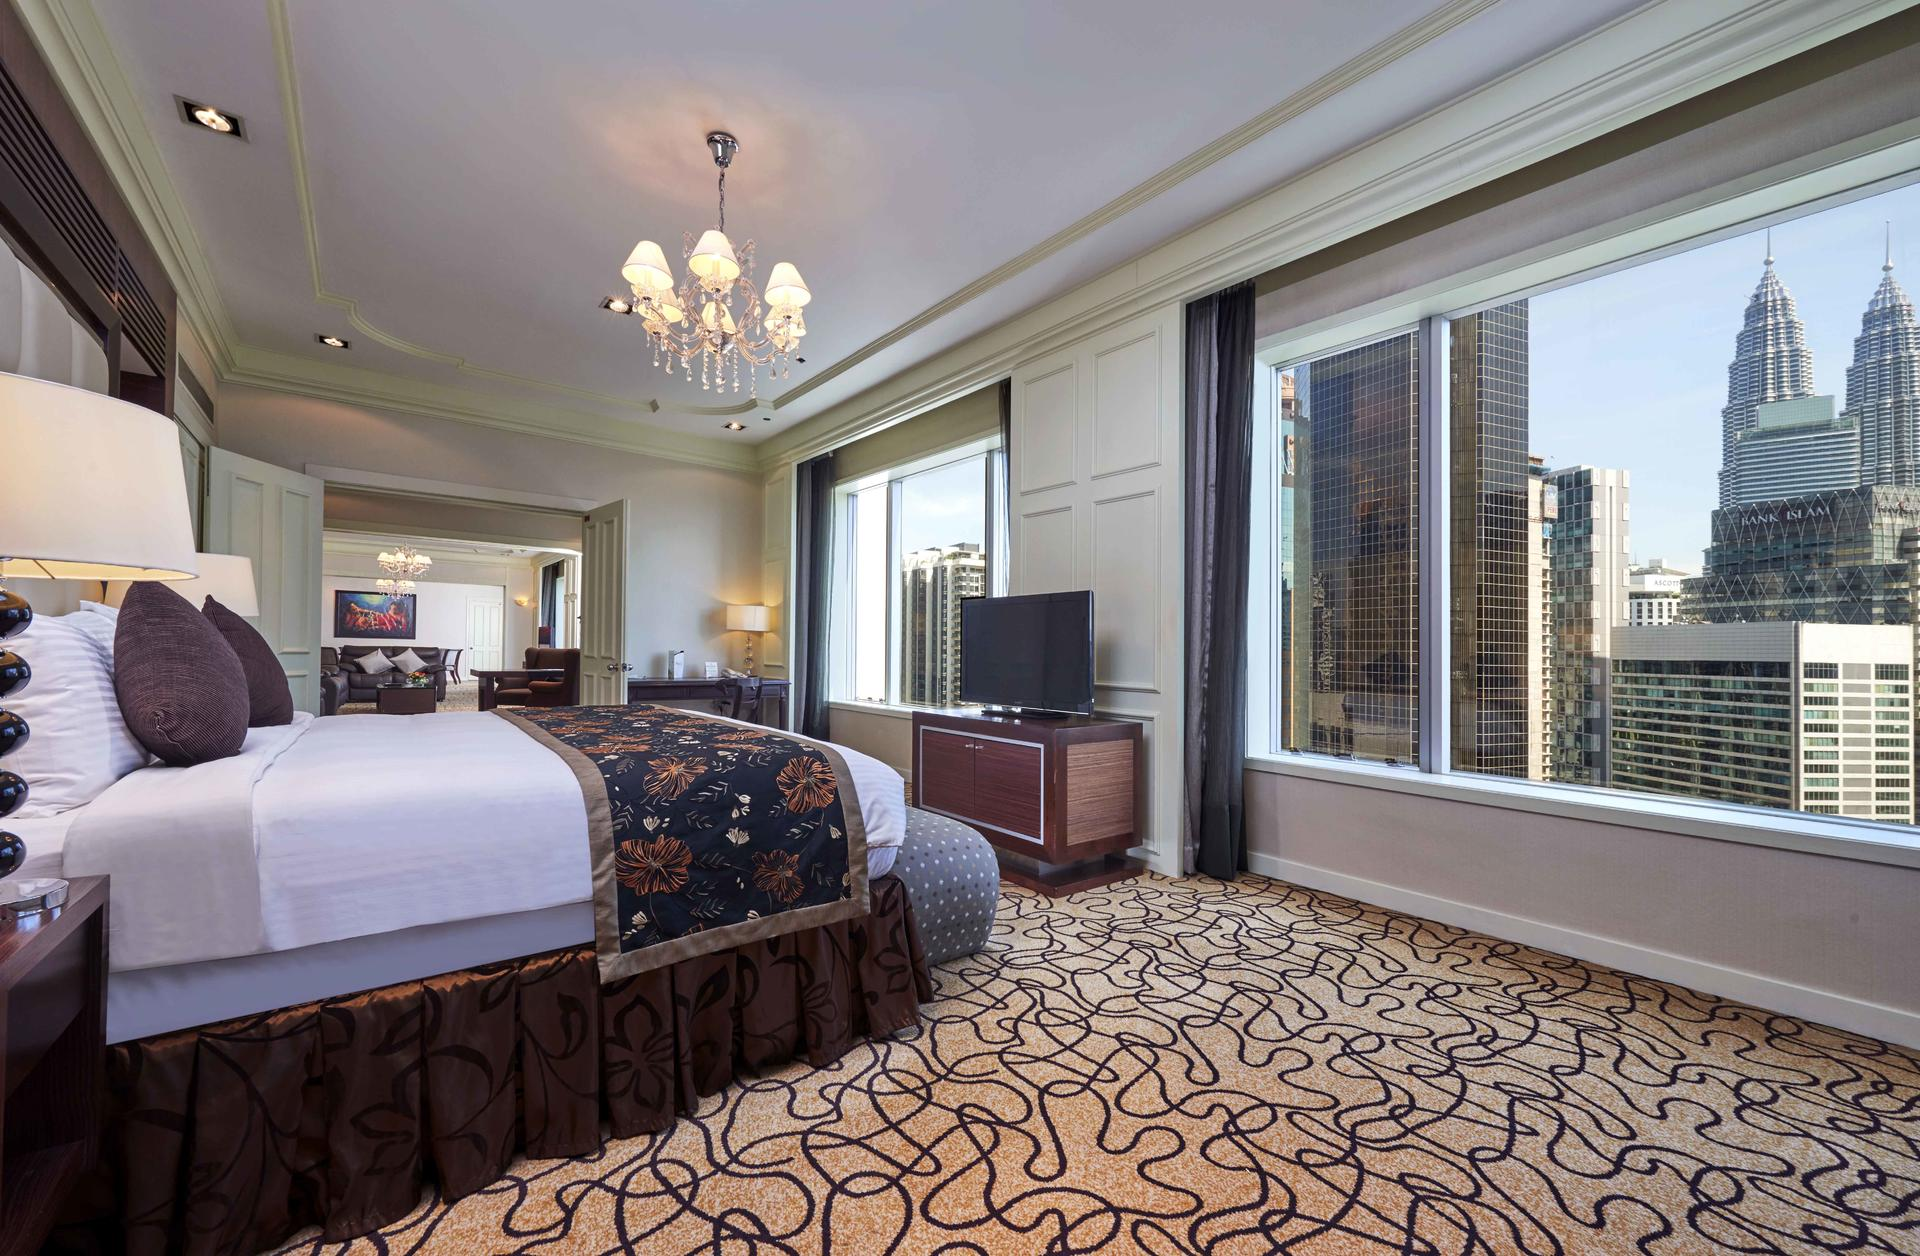 Presidential Suite with a separate living area, furnished with a